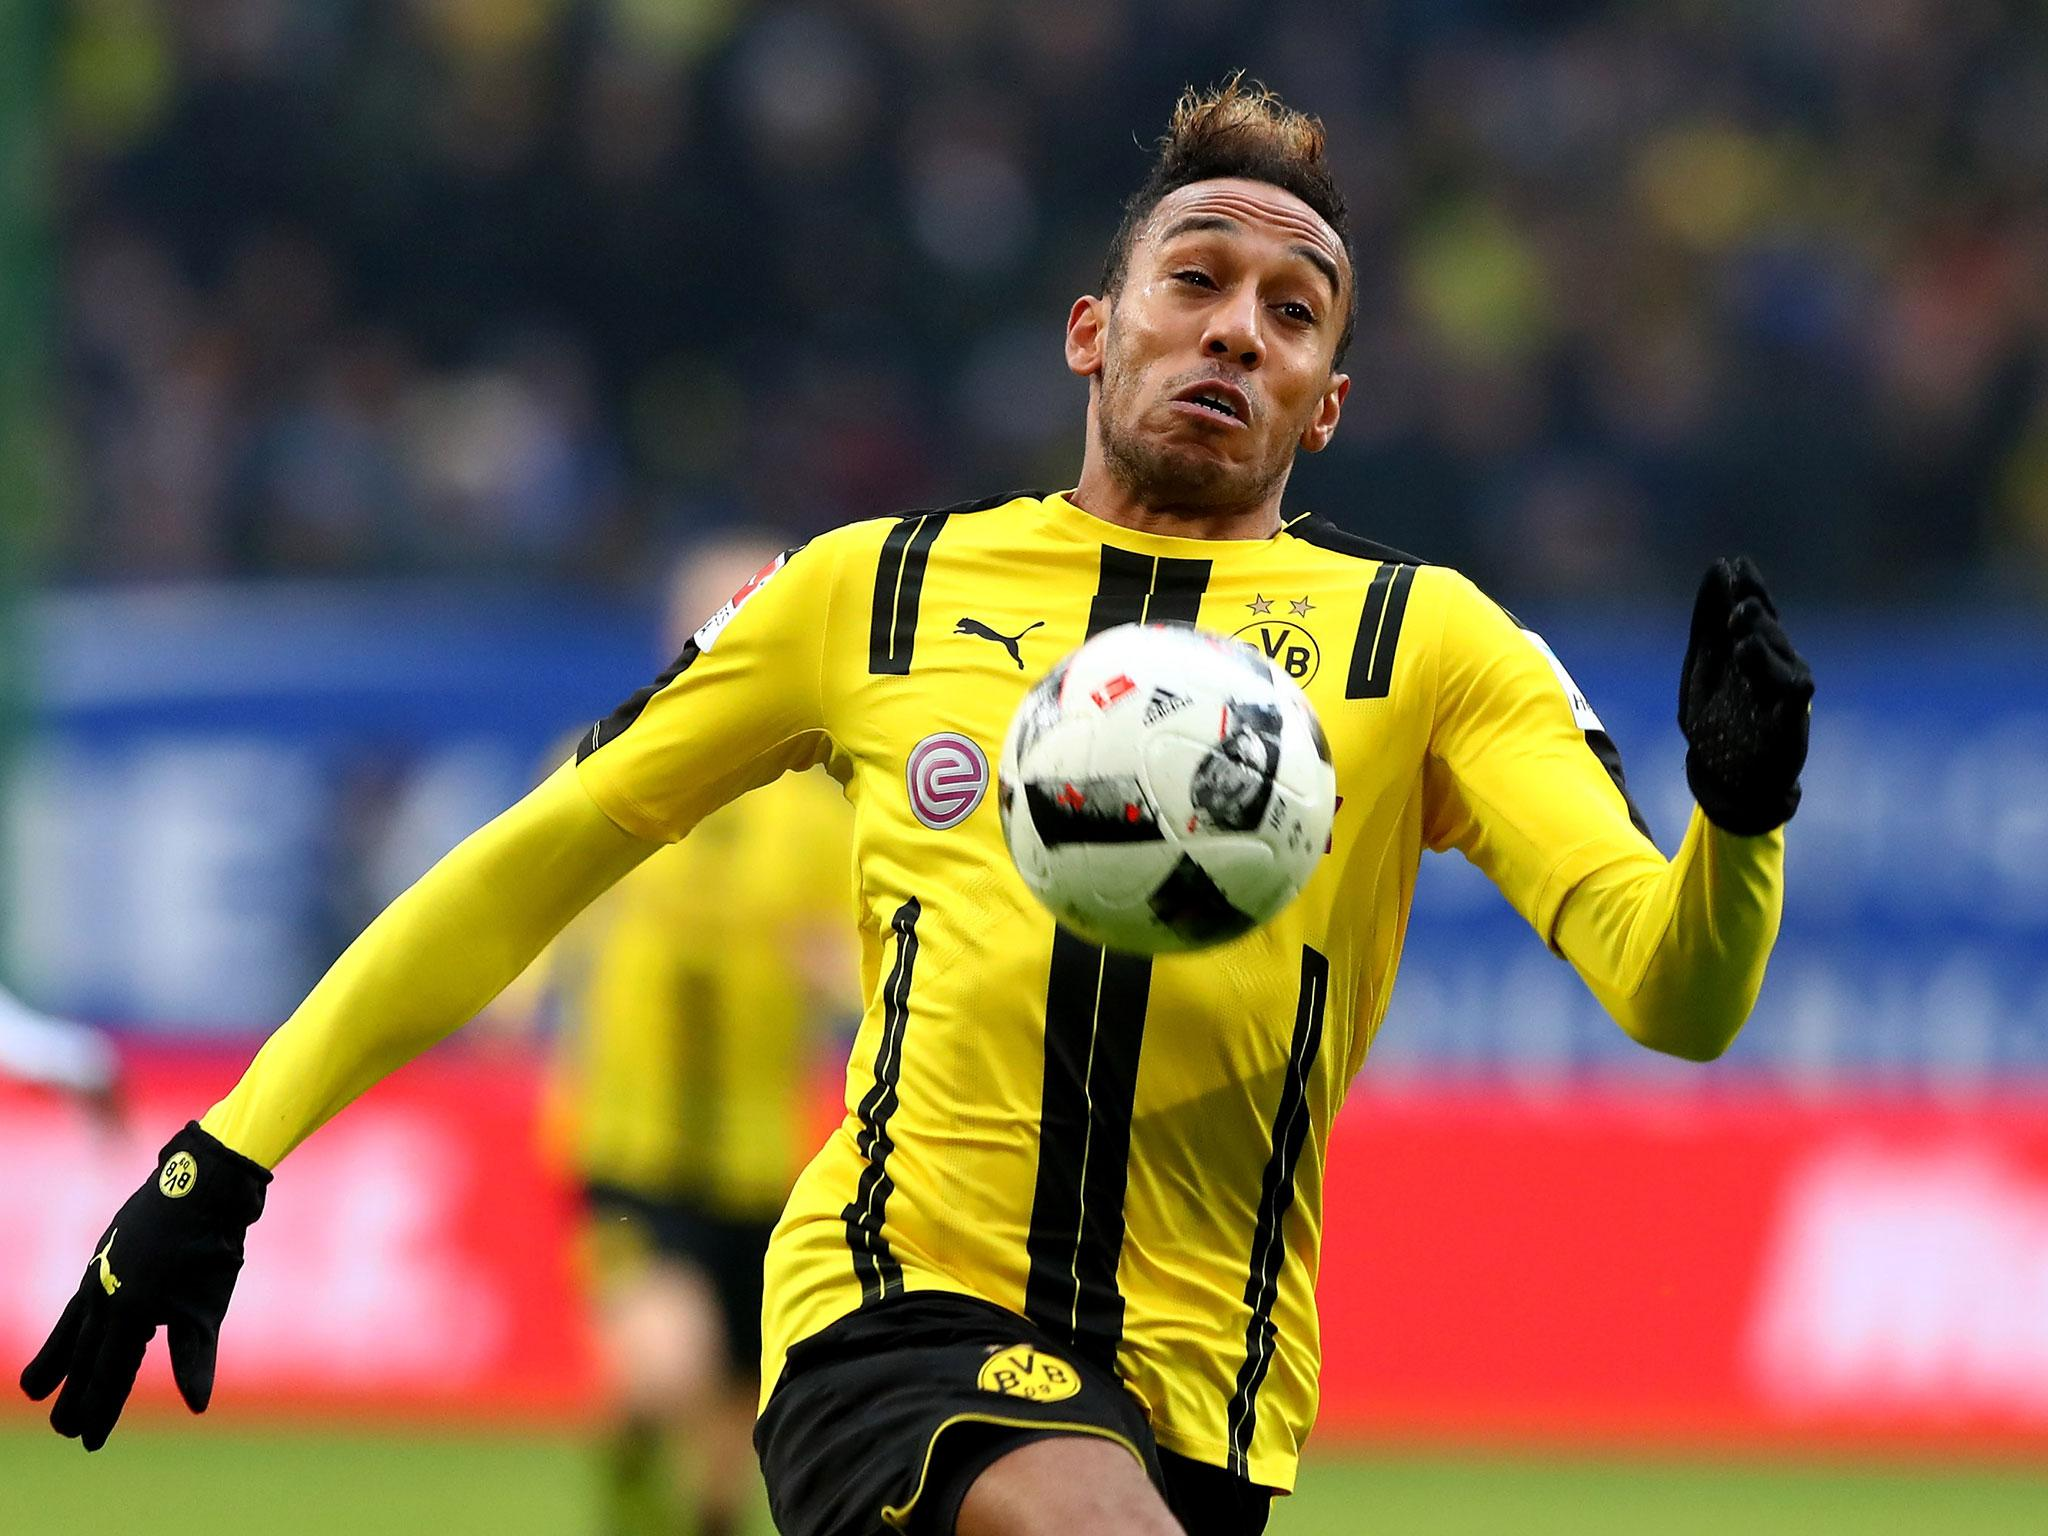 Pierre Emerick Aubameyang admits he wants summer transfer with